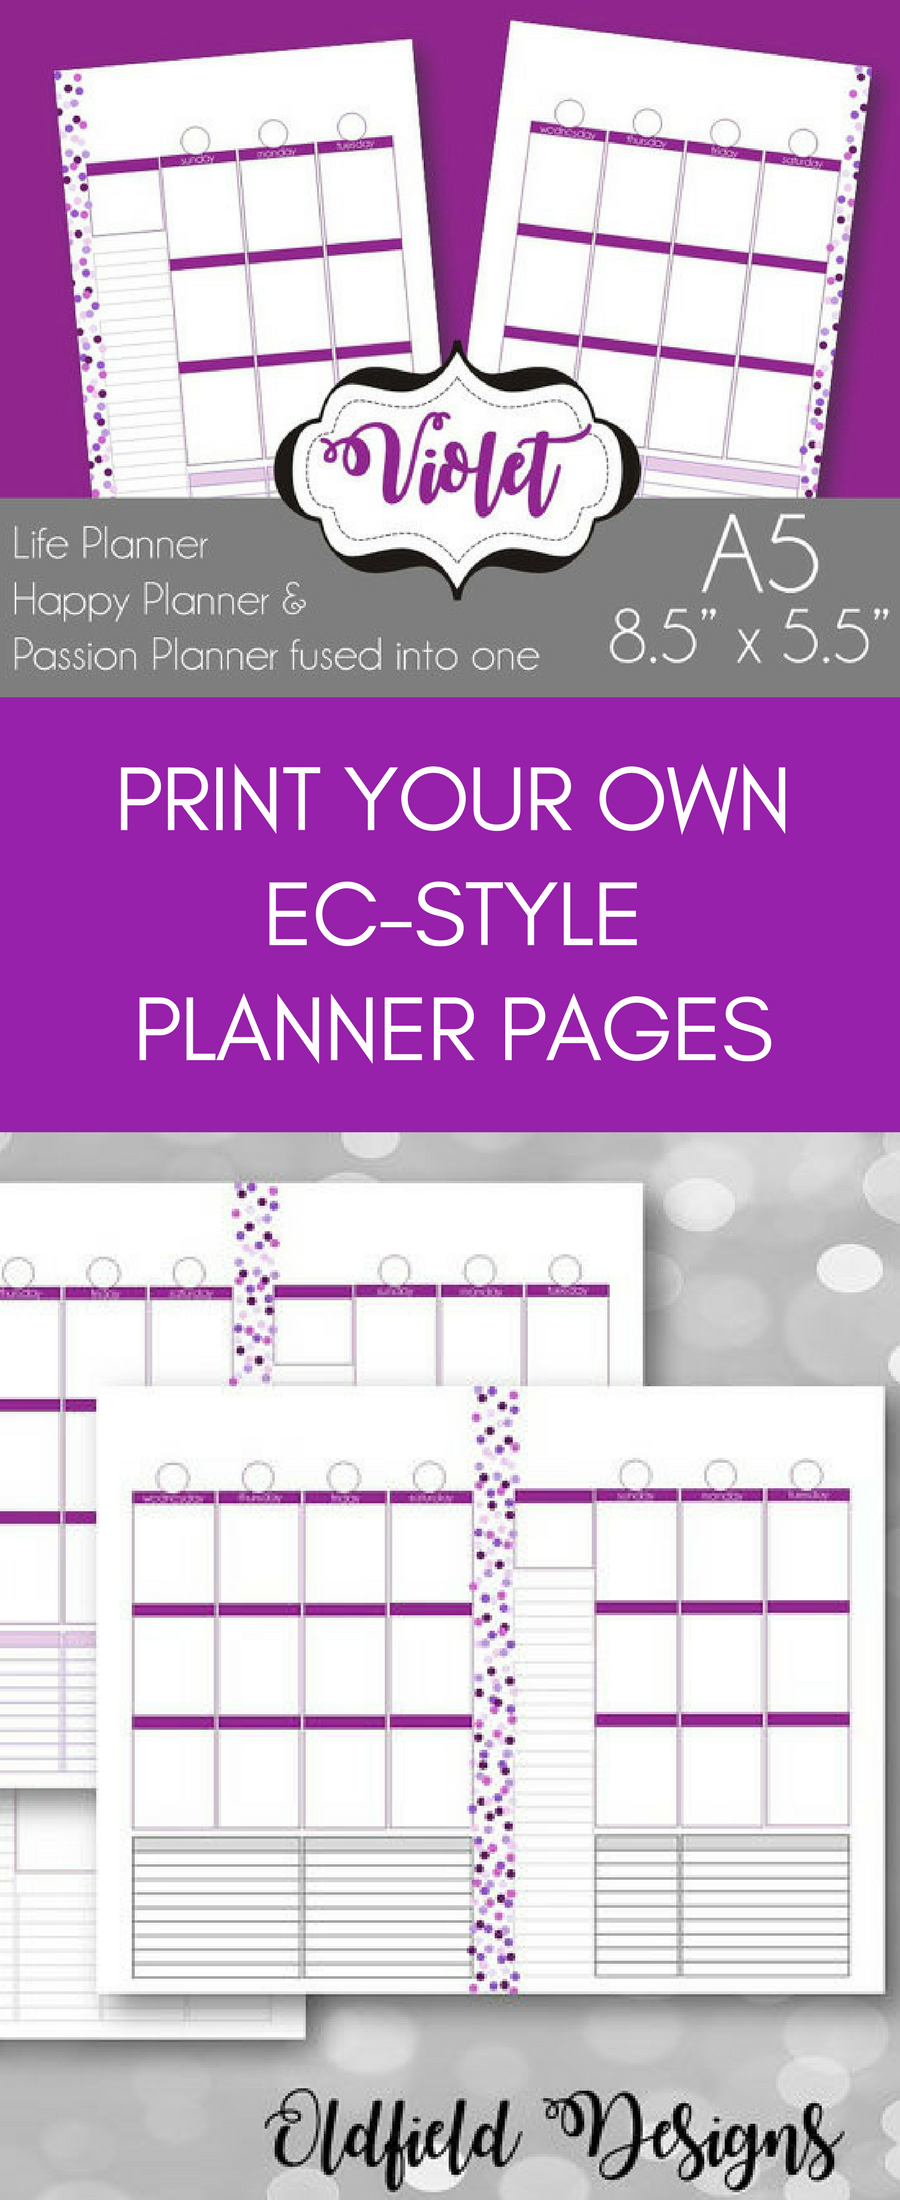 Wedding decorations lilac september 2018 Print your own planner pages with a vertical format like Erin